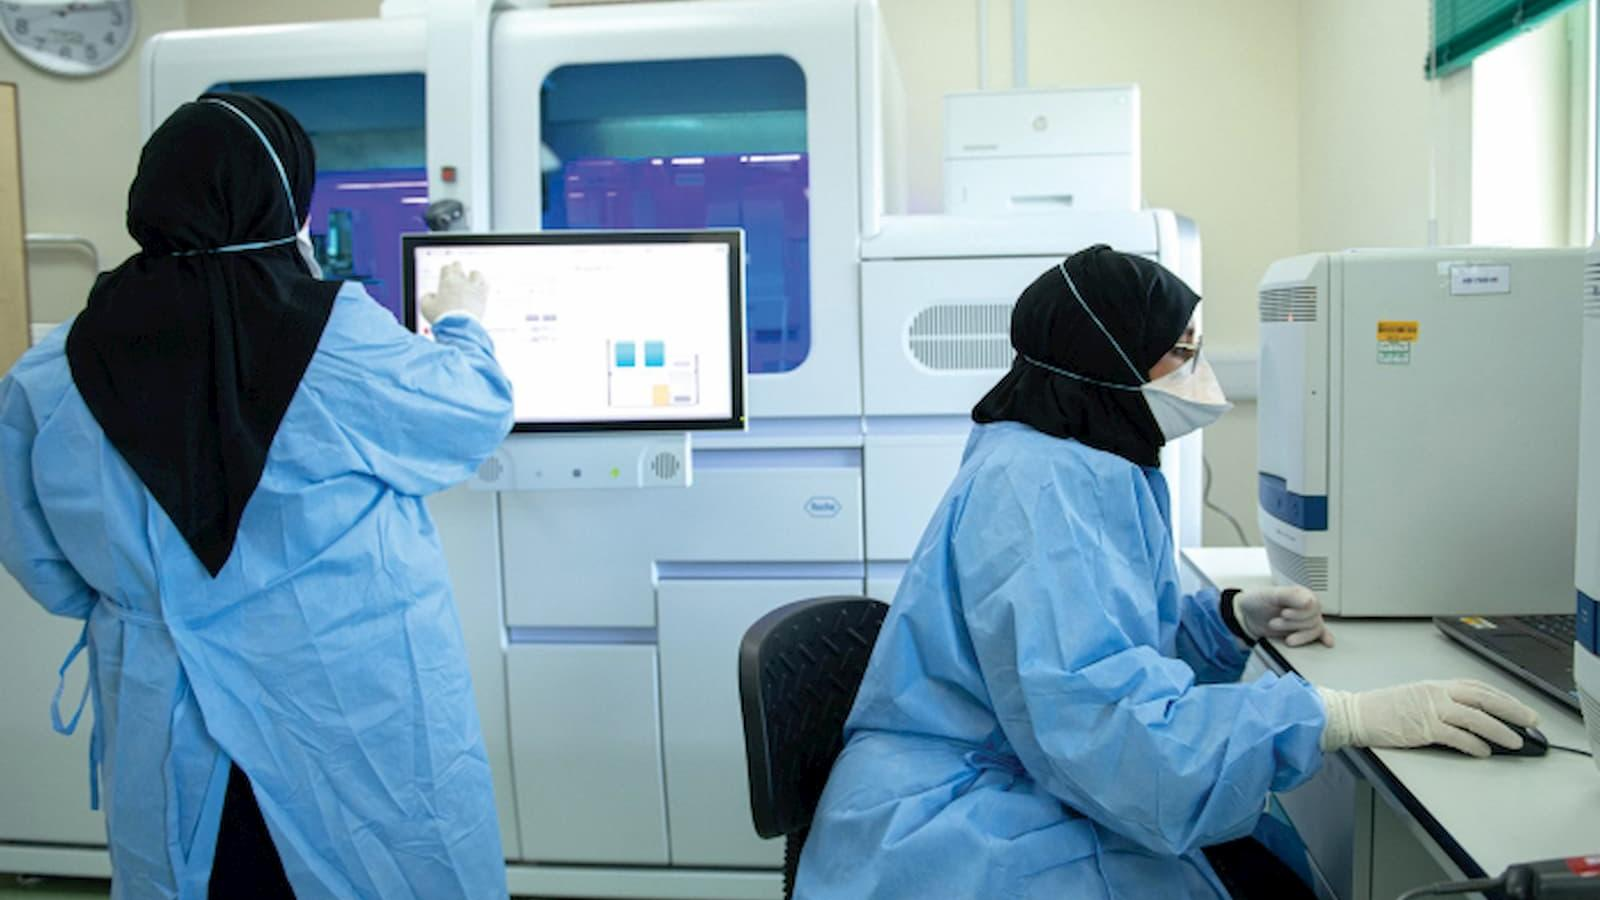 More than 8,500 people tested for COVID-19 in Qatar